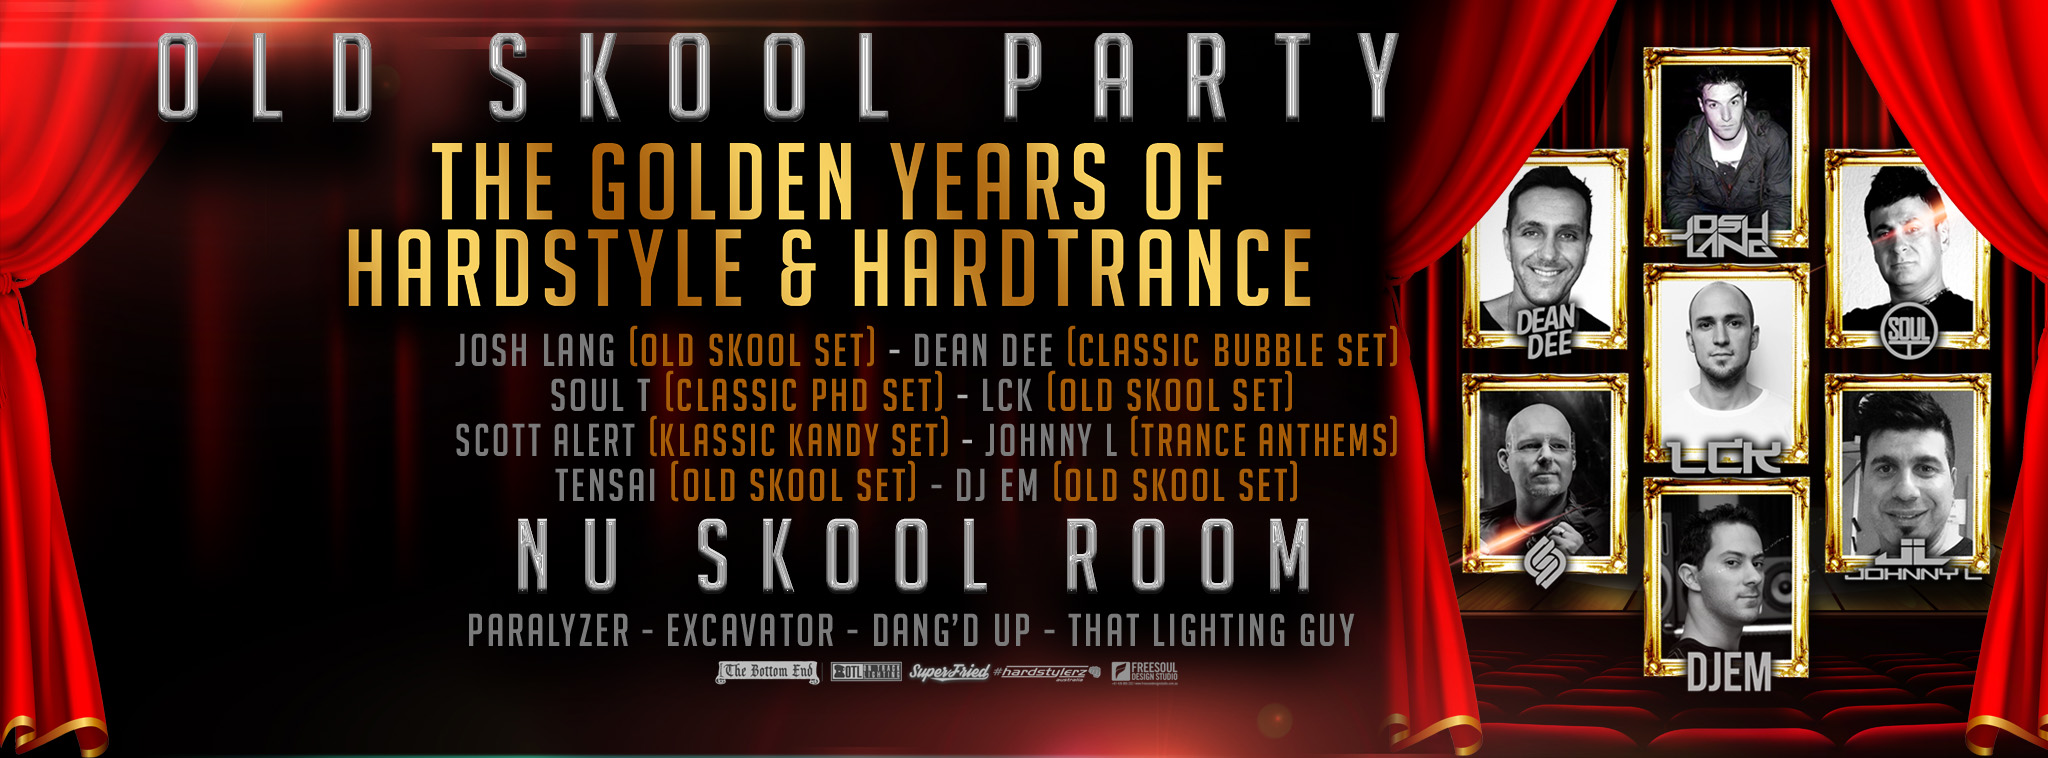 OLD SKOOL PARTY_BANNER1